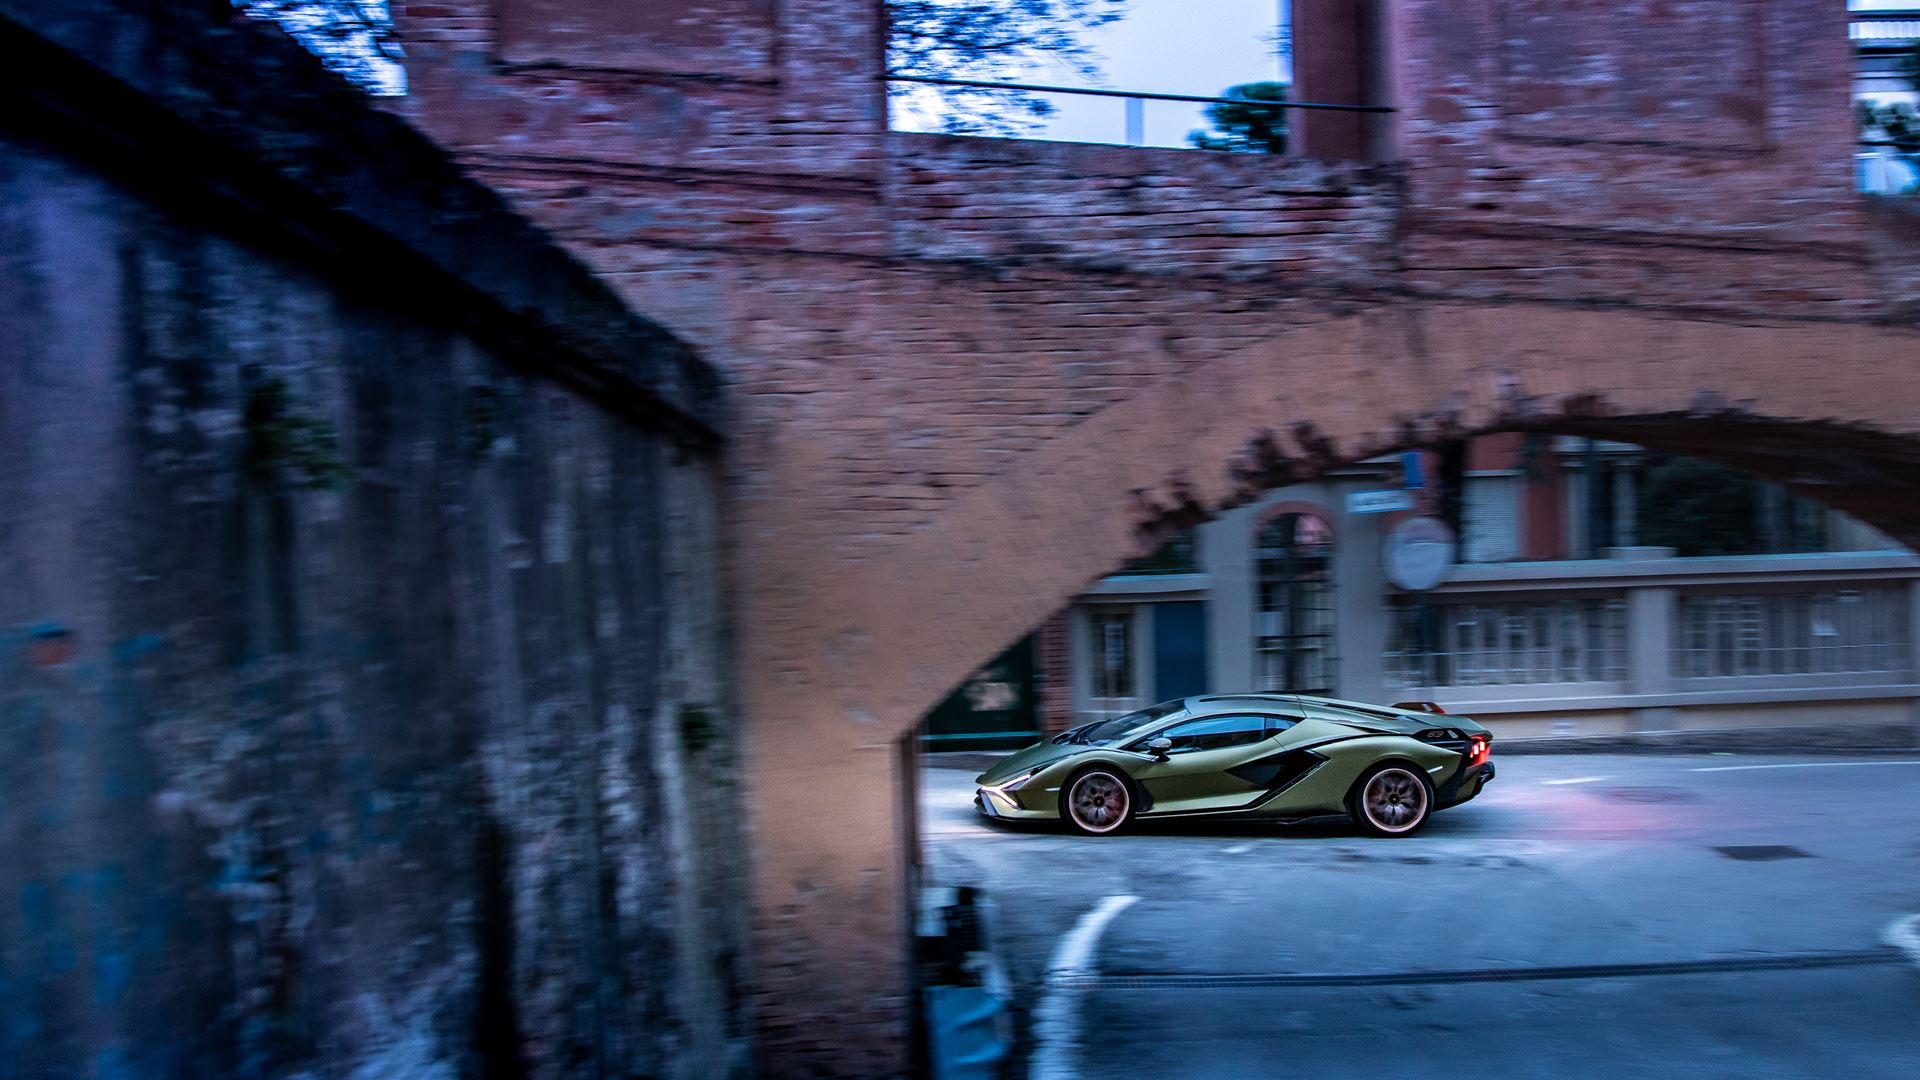 Lamborghini Sián pays homage to the porticoes of Bologna. Following the UNESCO designation, the super sports car from Sant'Agata travels the streets of Bologna's porticoes - Image 1